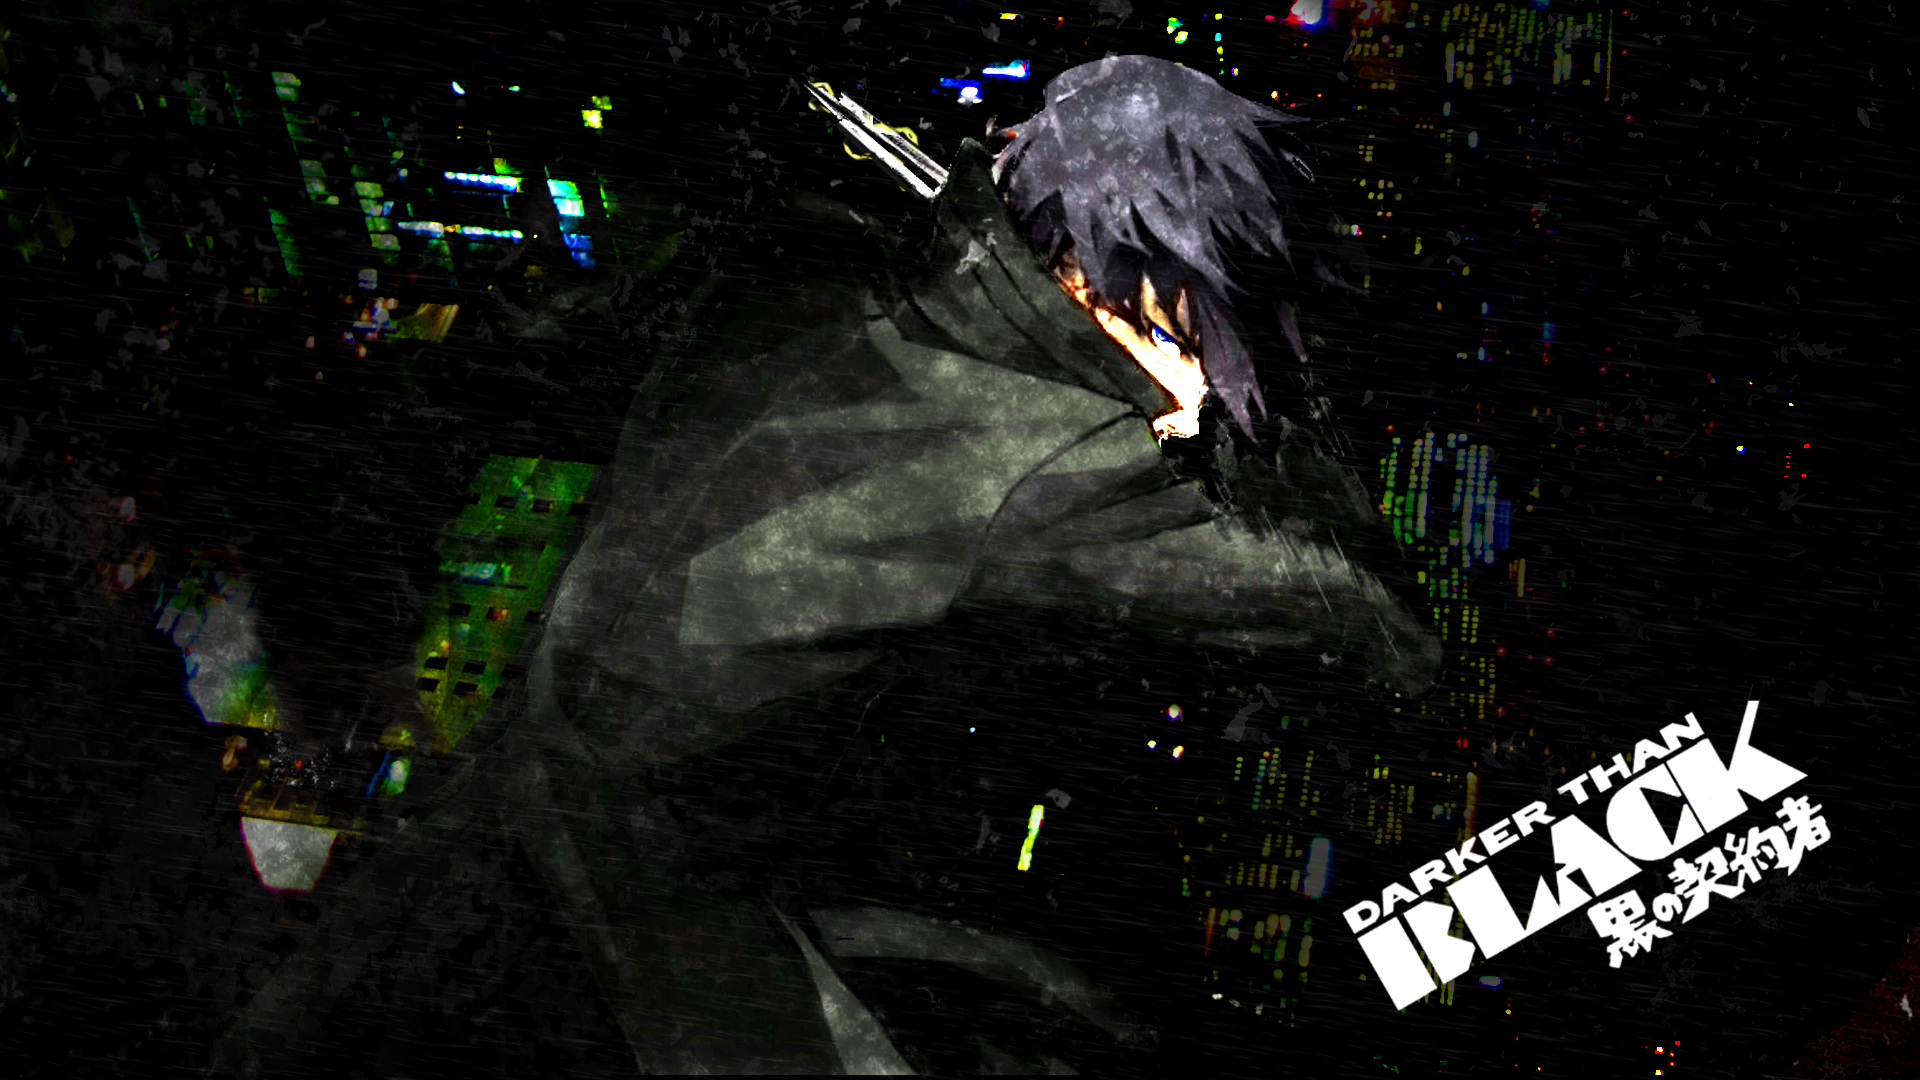 Free Download Wallpaper Featuring Hei From Darker Than Black